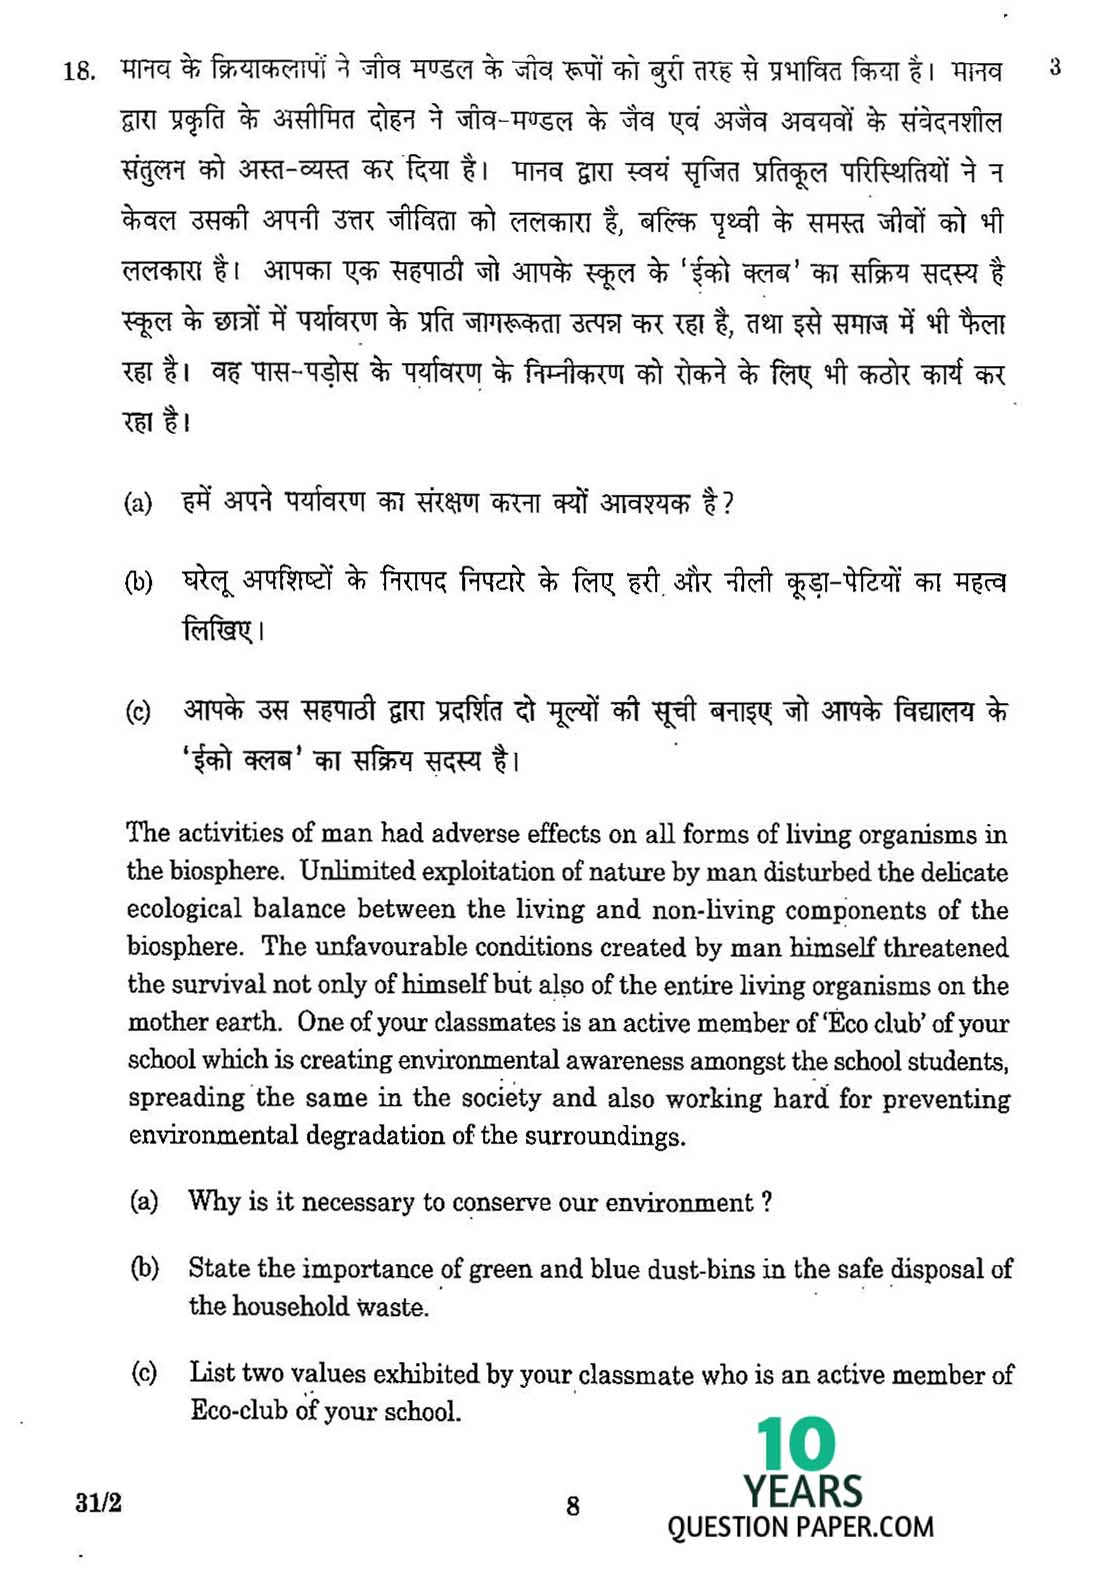 cbse class 10th 2016 Science question paper